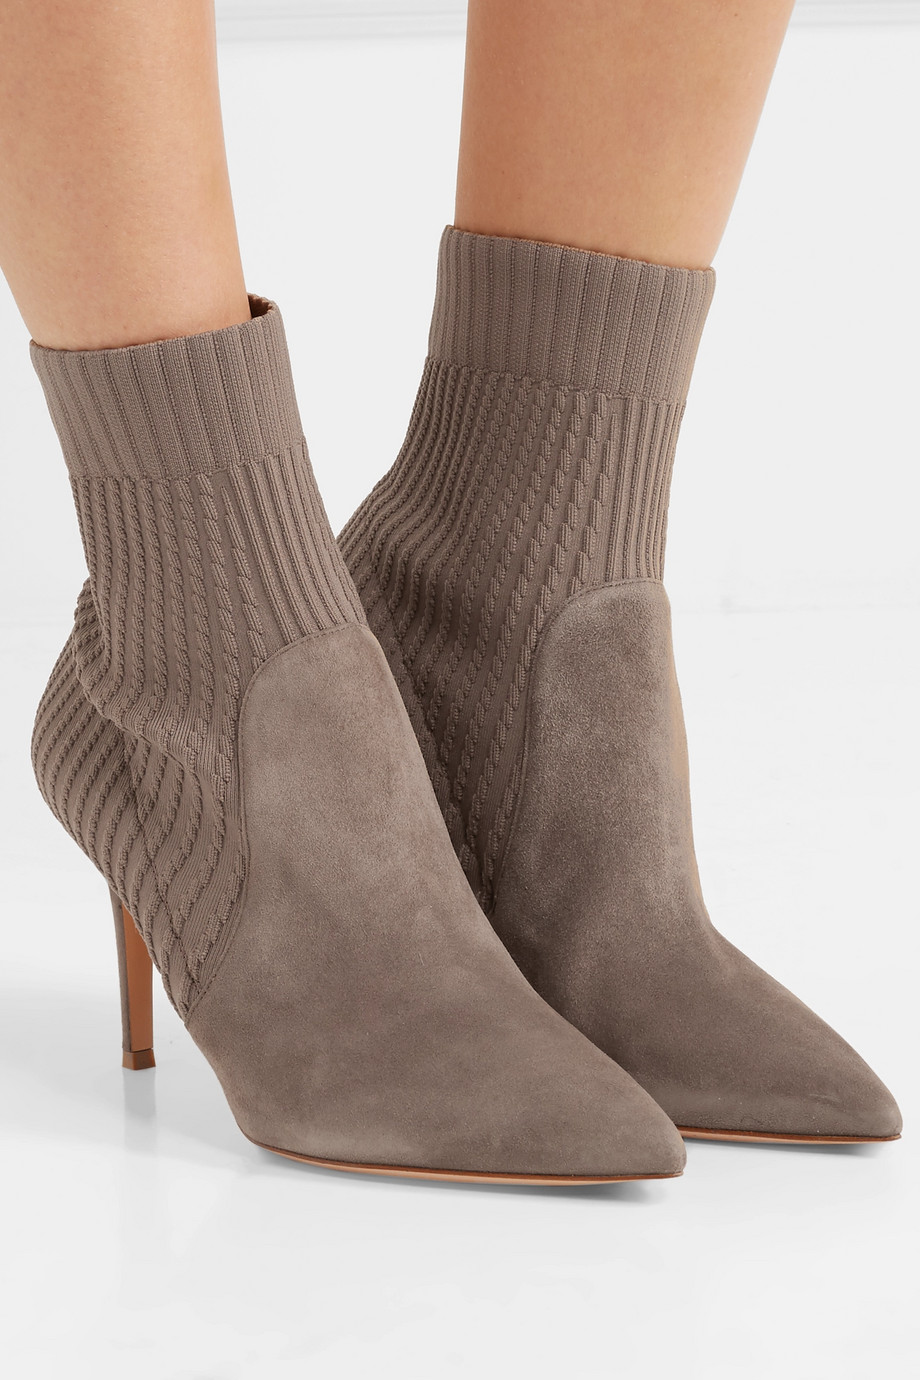 Sock Ankle Boots Gianvito Rossi buy Sock Ankle Boots Gianvito Rossi internet shop